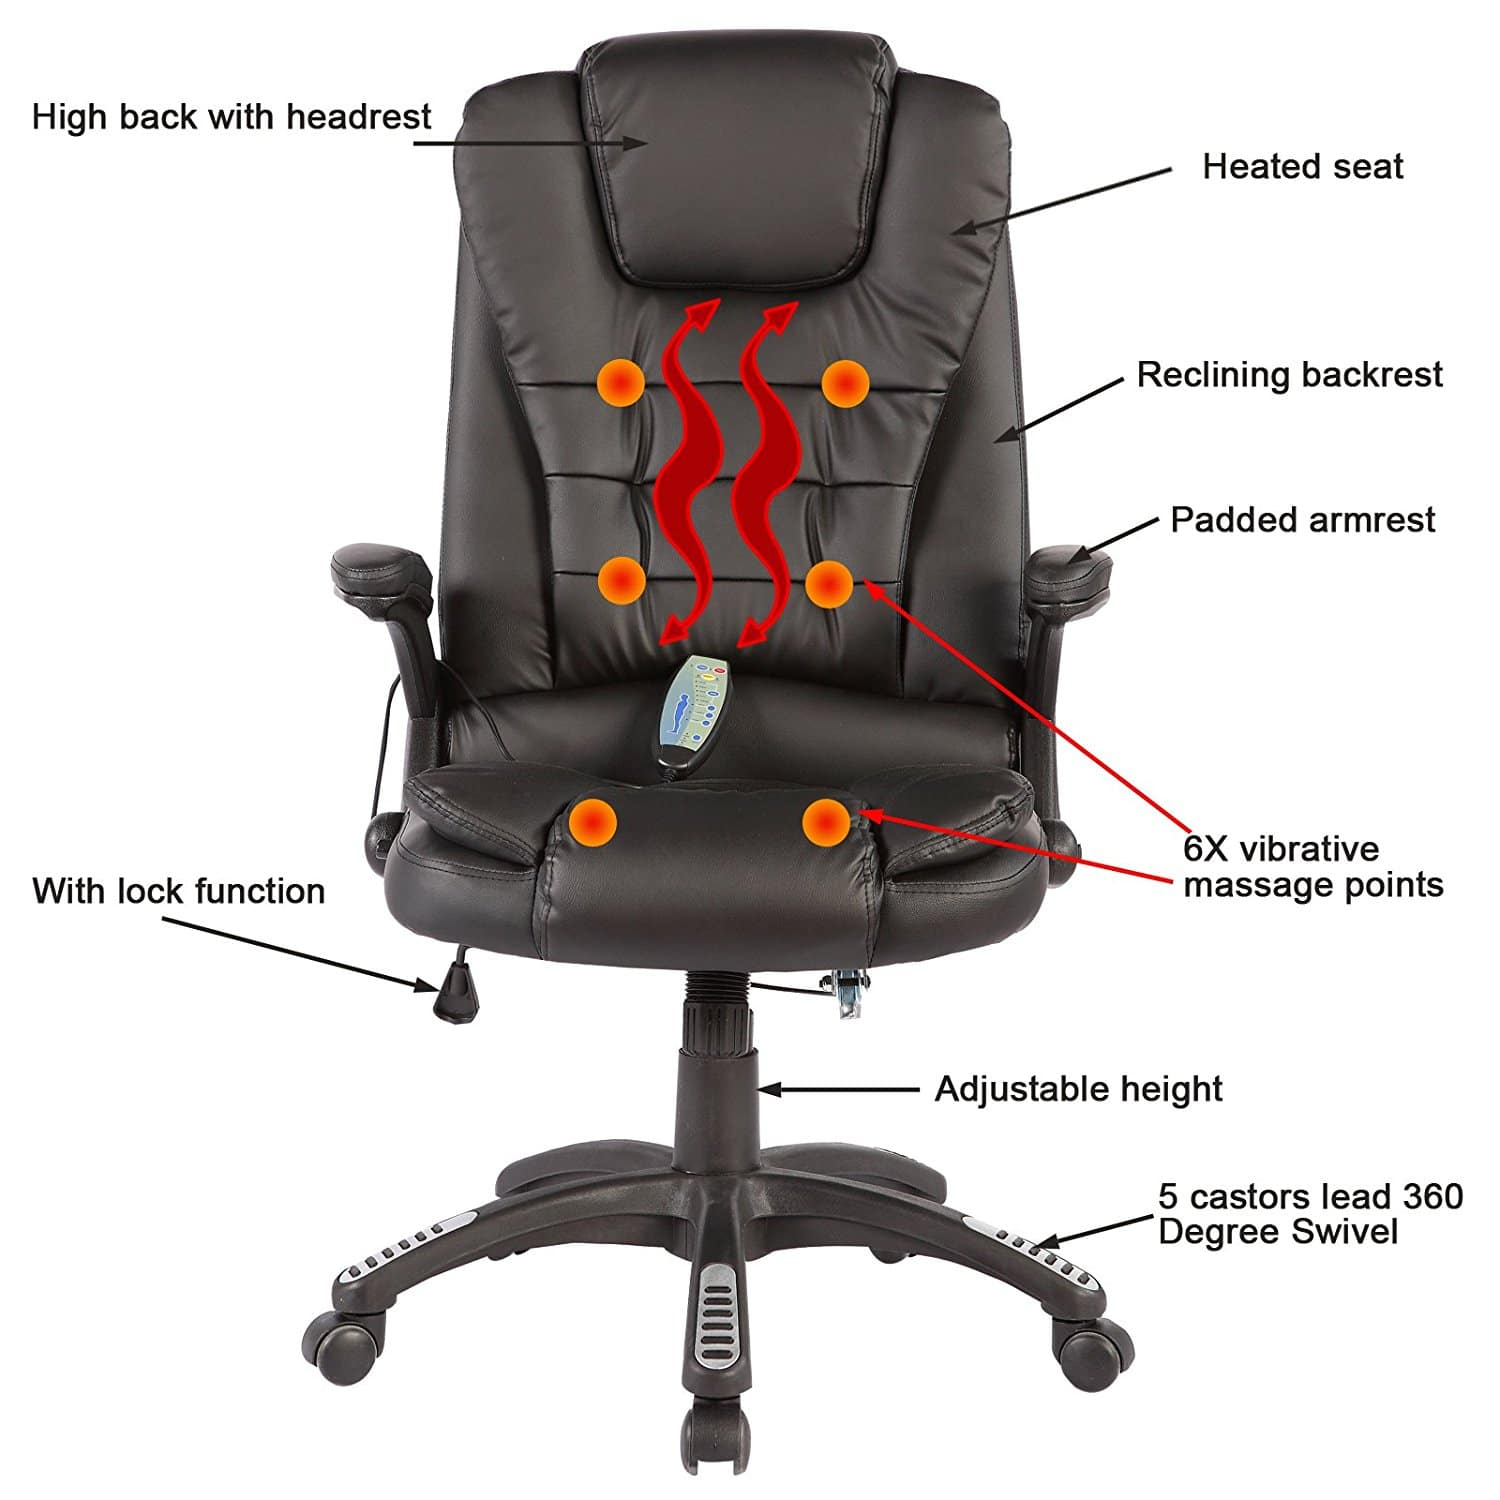 Mecor-office-heated-chair